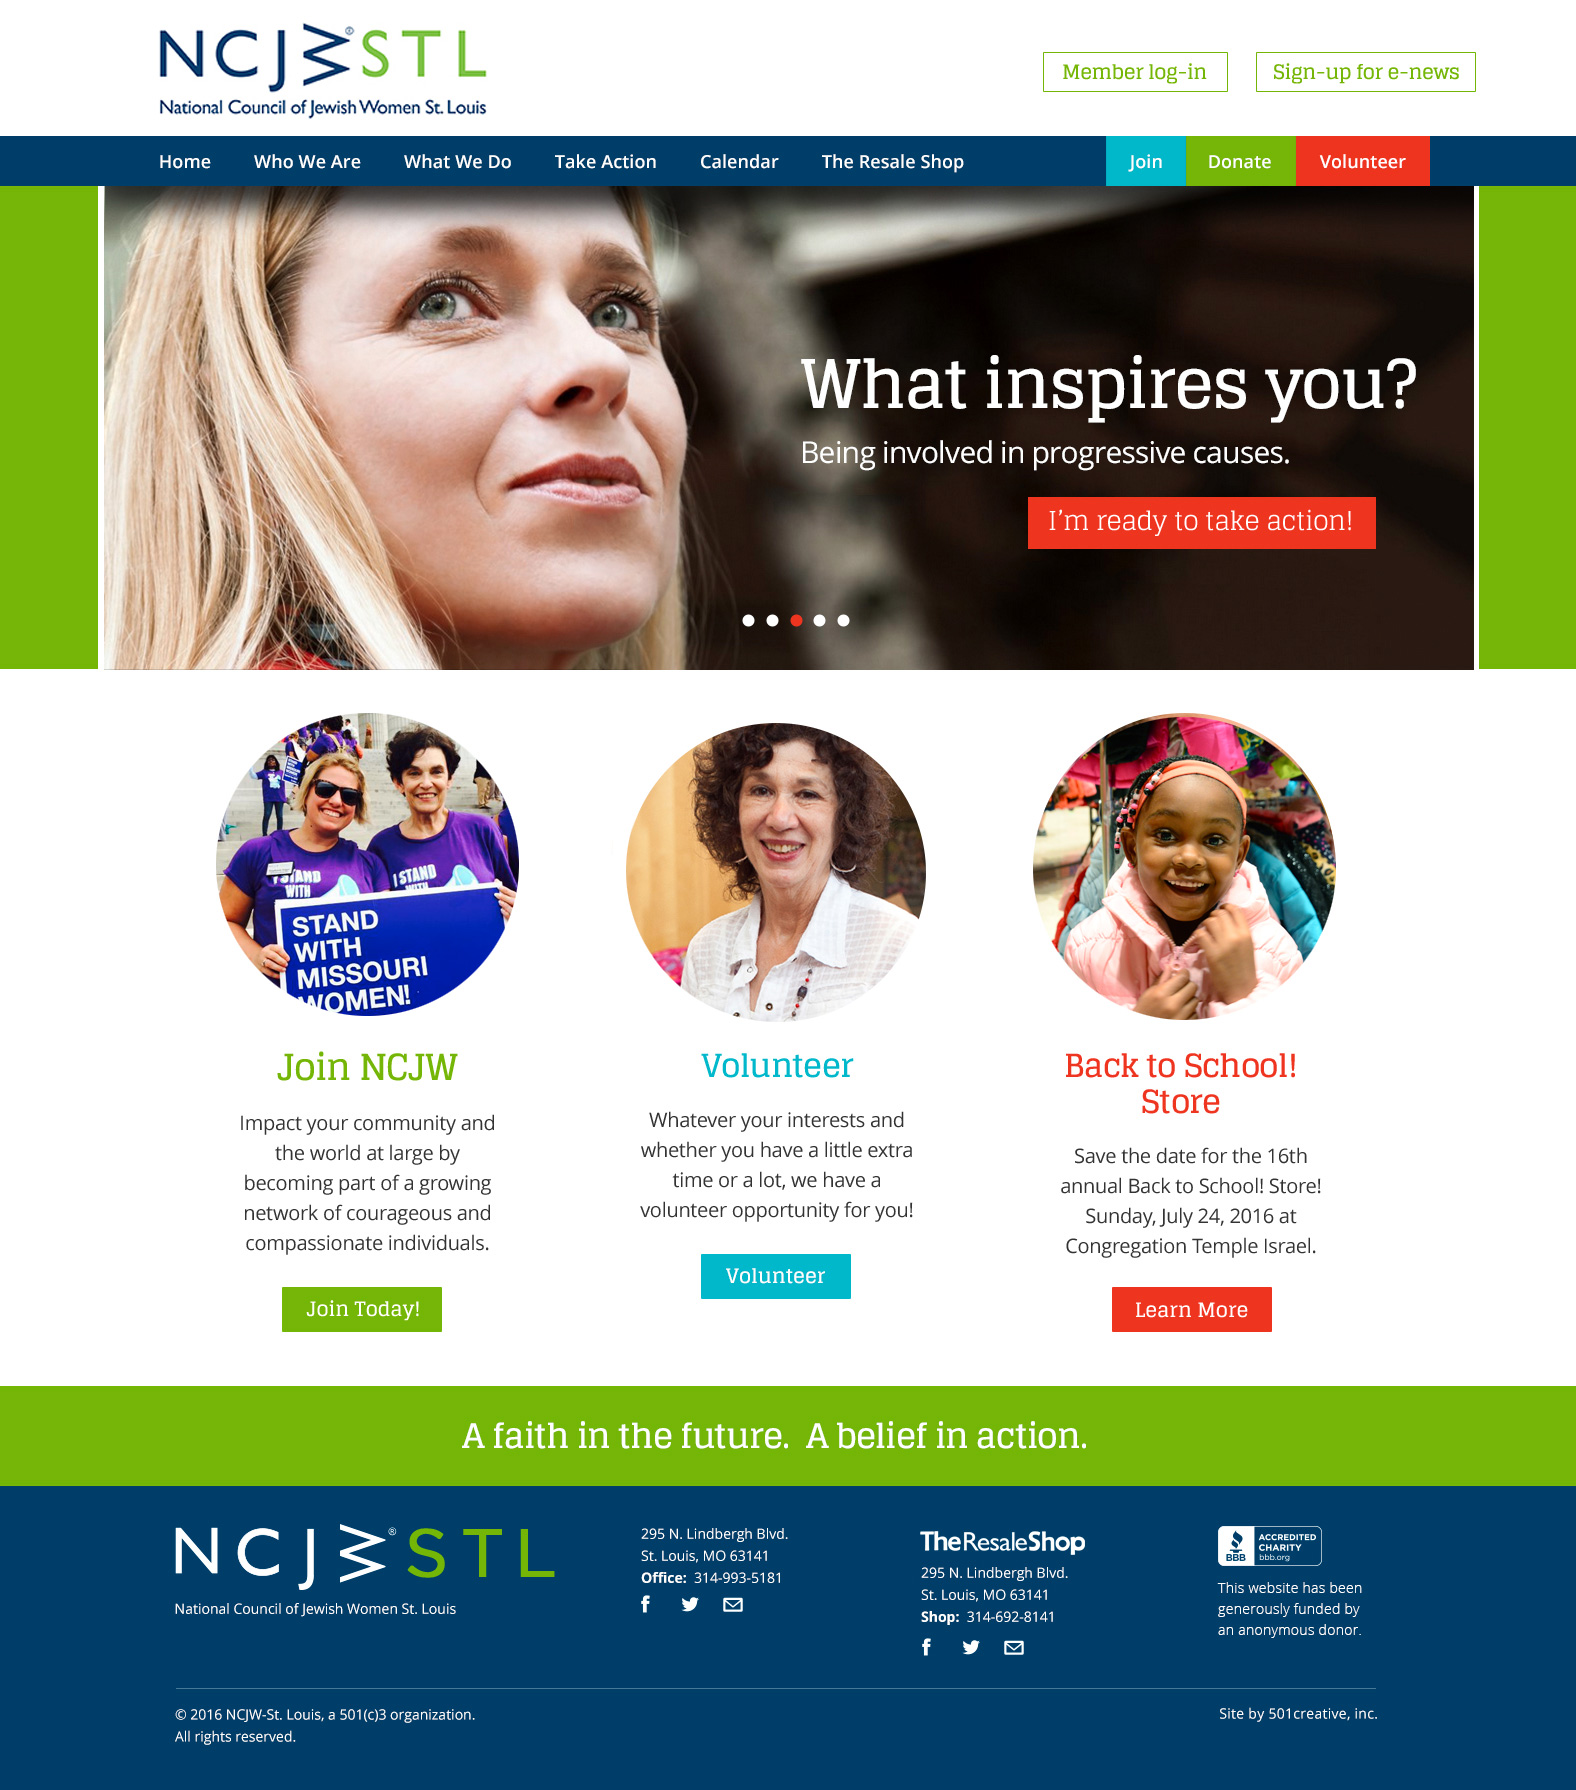 NCJWSTL website home page menu system